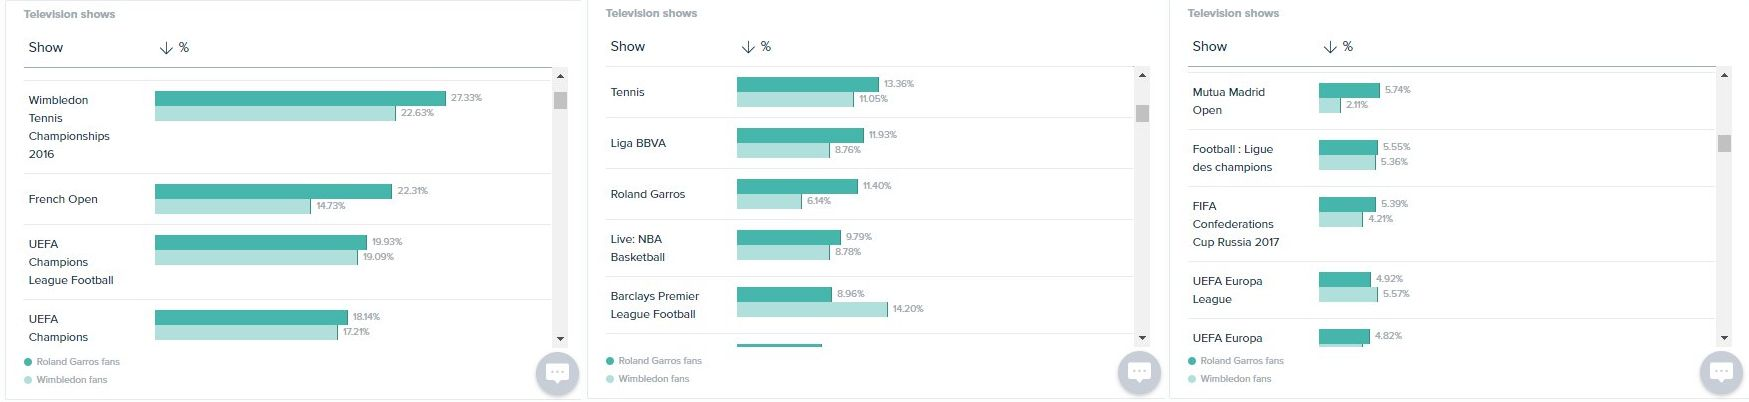 Audiense - Consumer Insights Report - TV shows 2